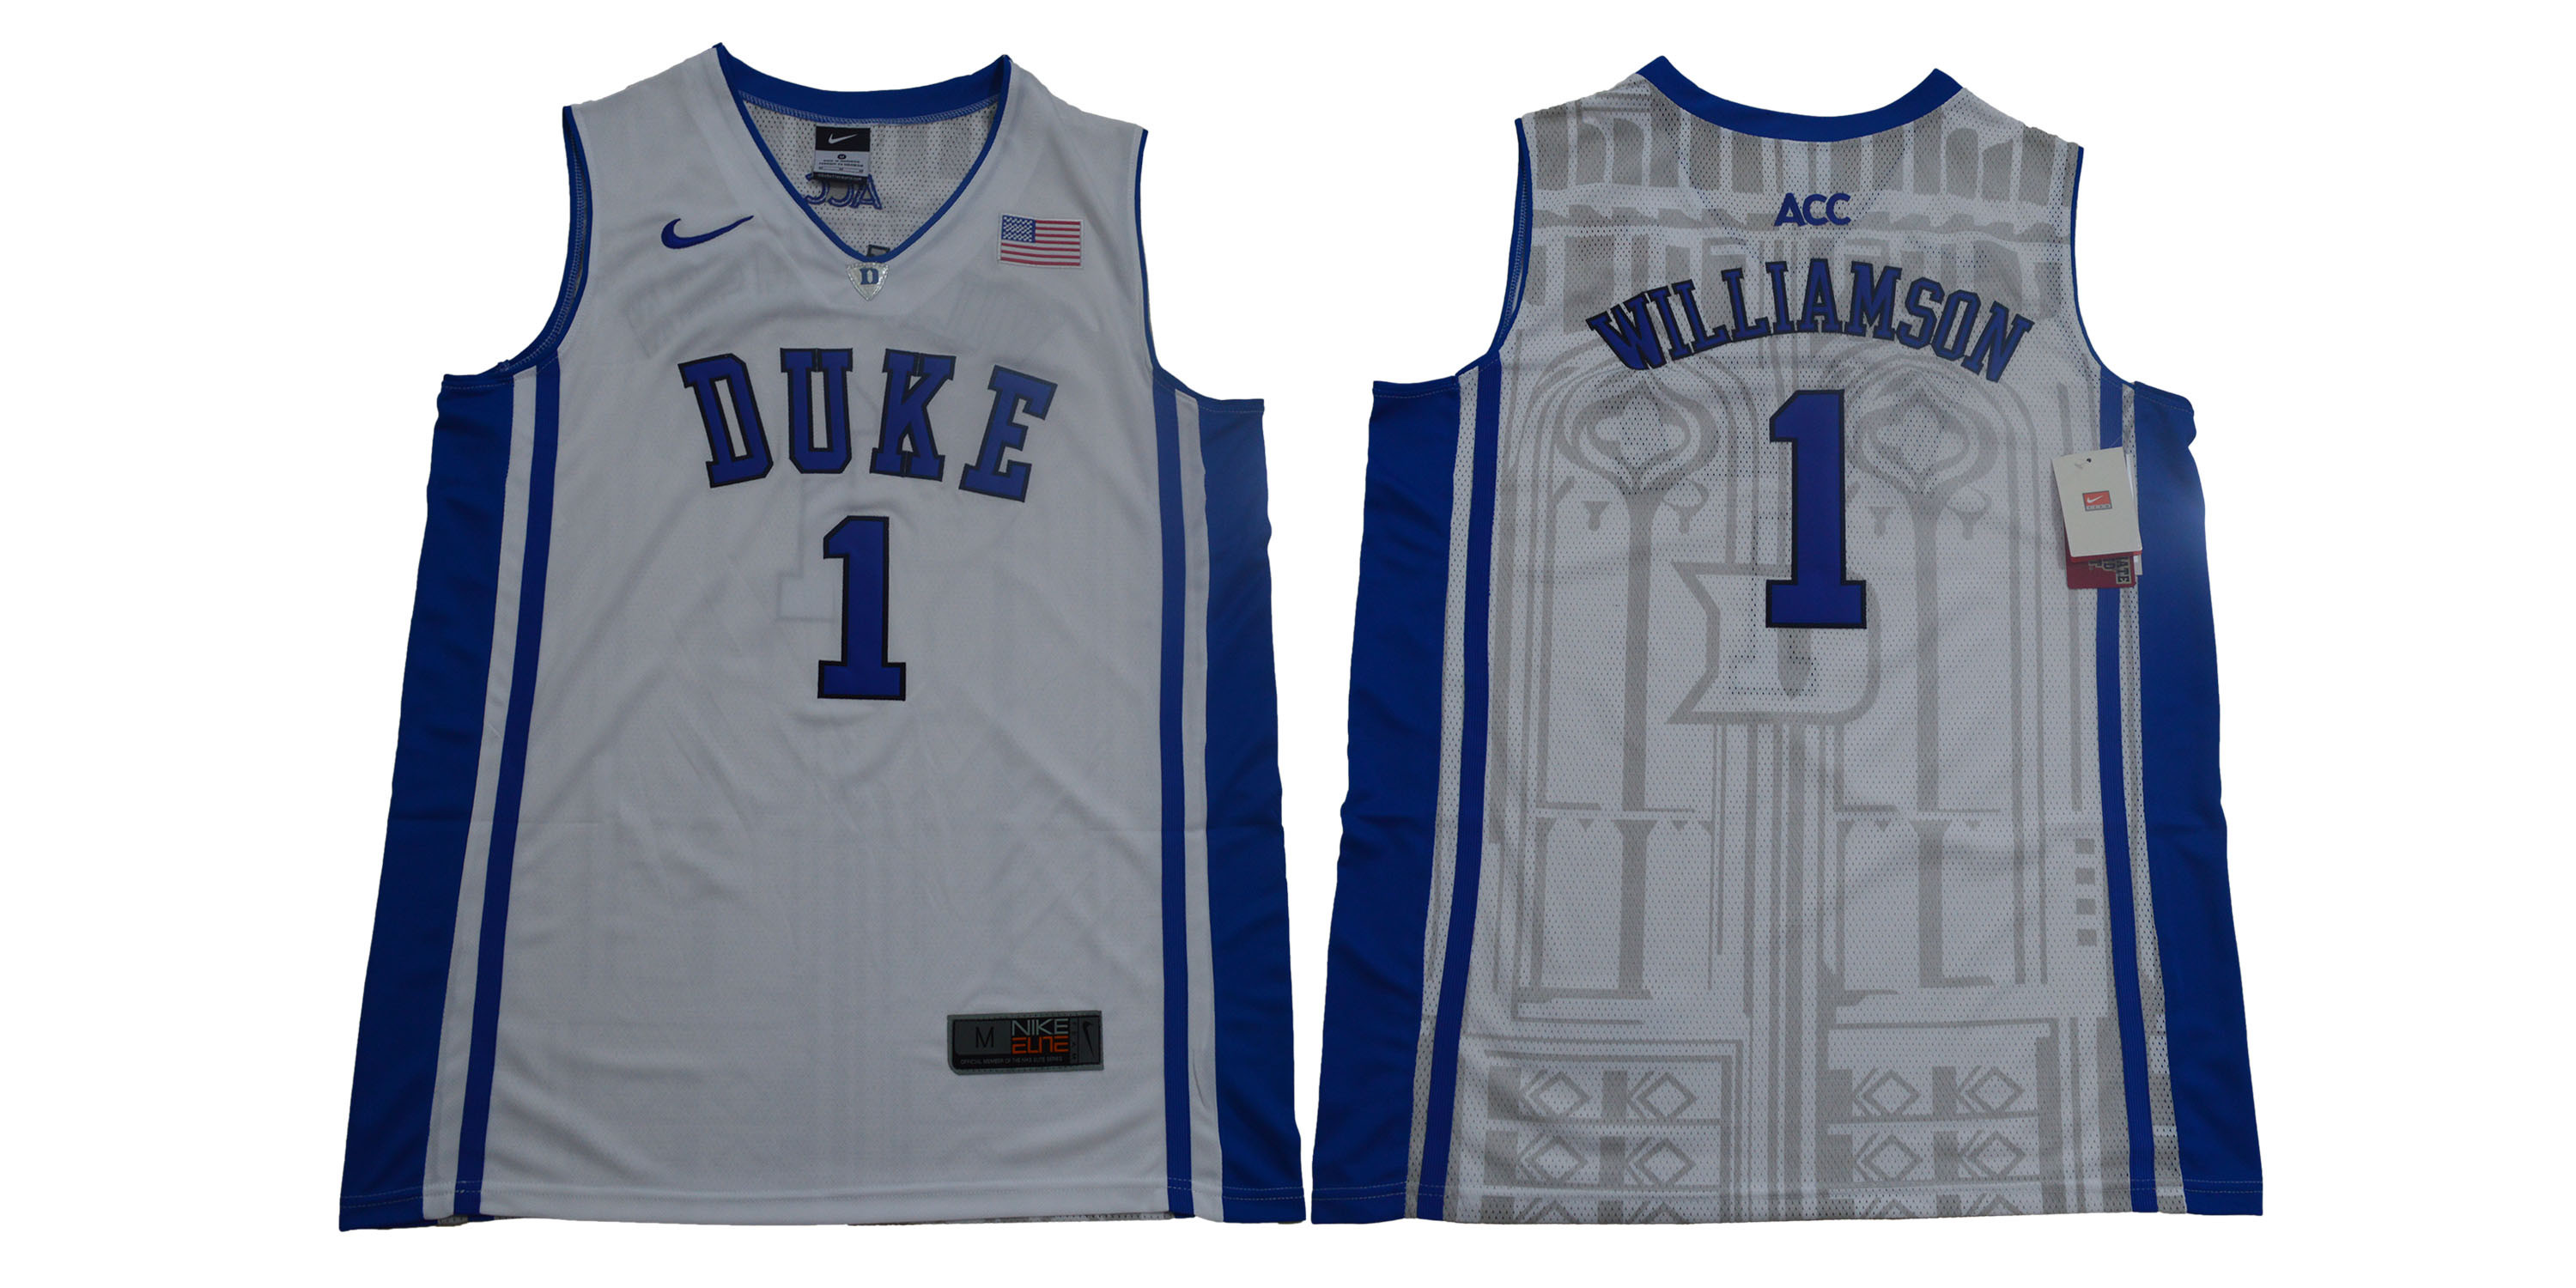 086021b2774 Duke Blue Devils 1 Zion Williamson Black Nike Elite College Basketball  Jersey